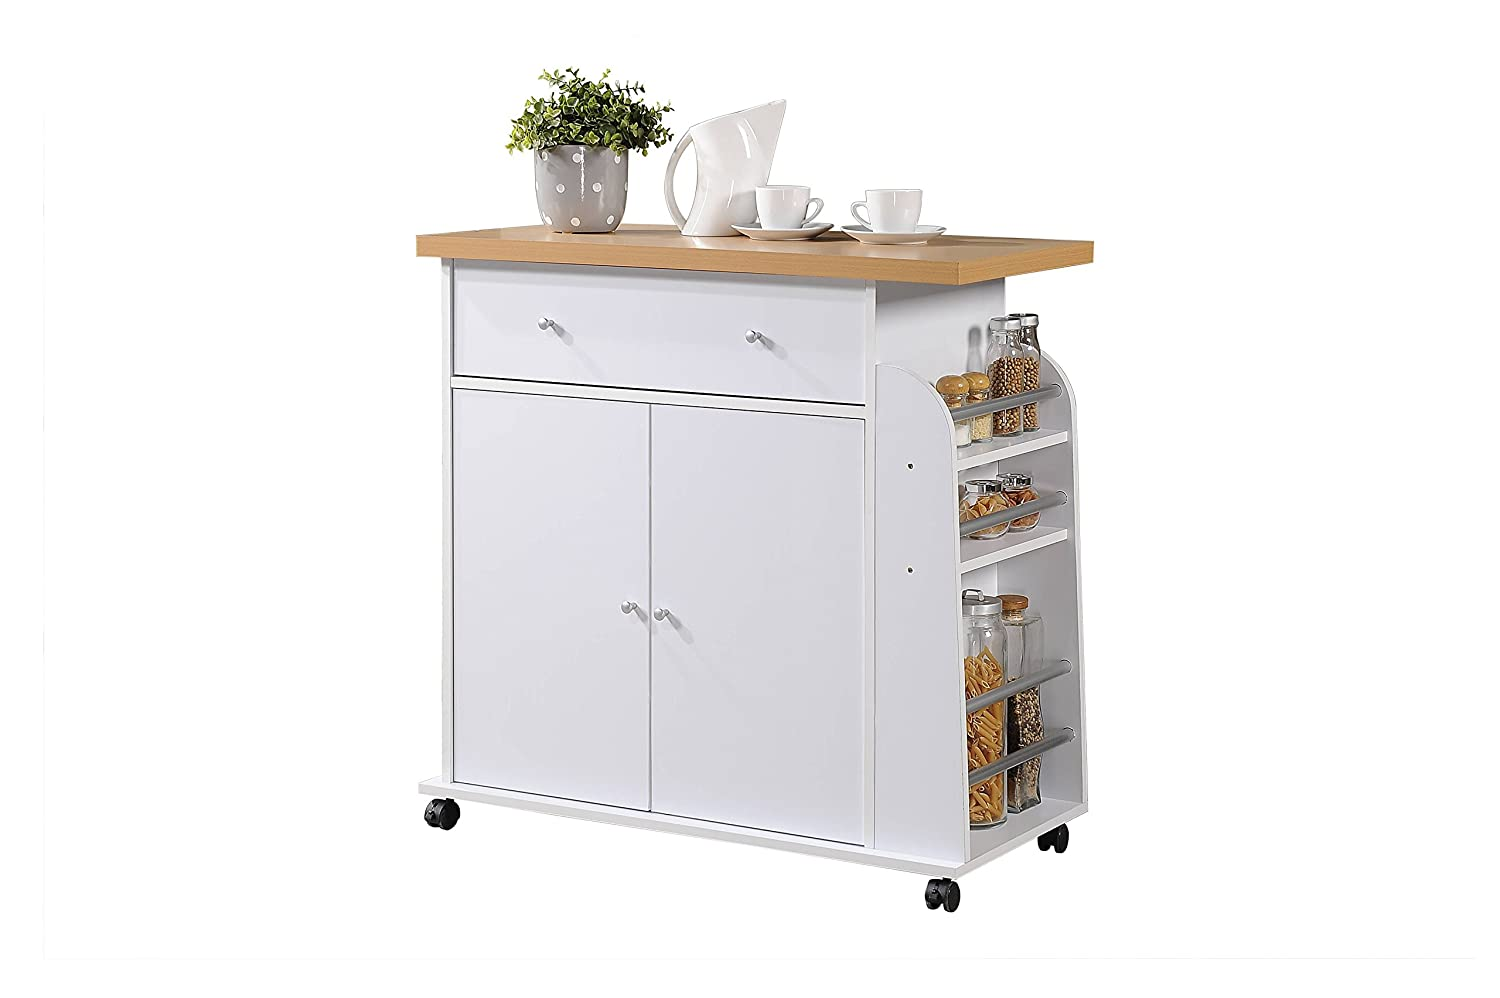 Hodedah HIK65 White Import Kitchen Island with Spice and Towel Rack, White Hodedah Import